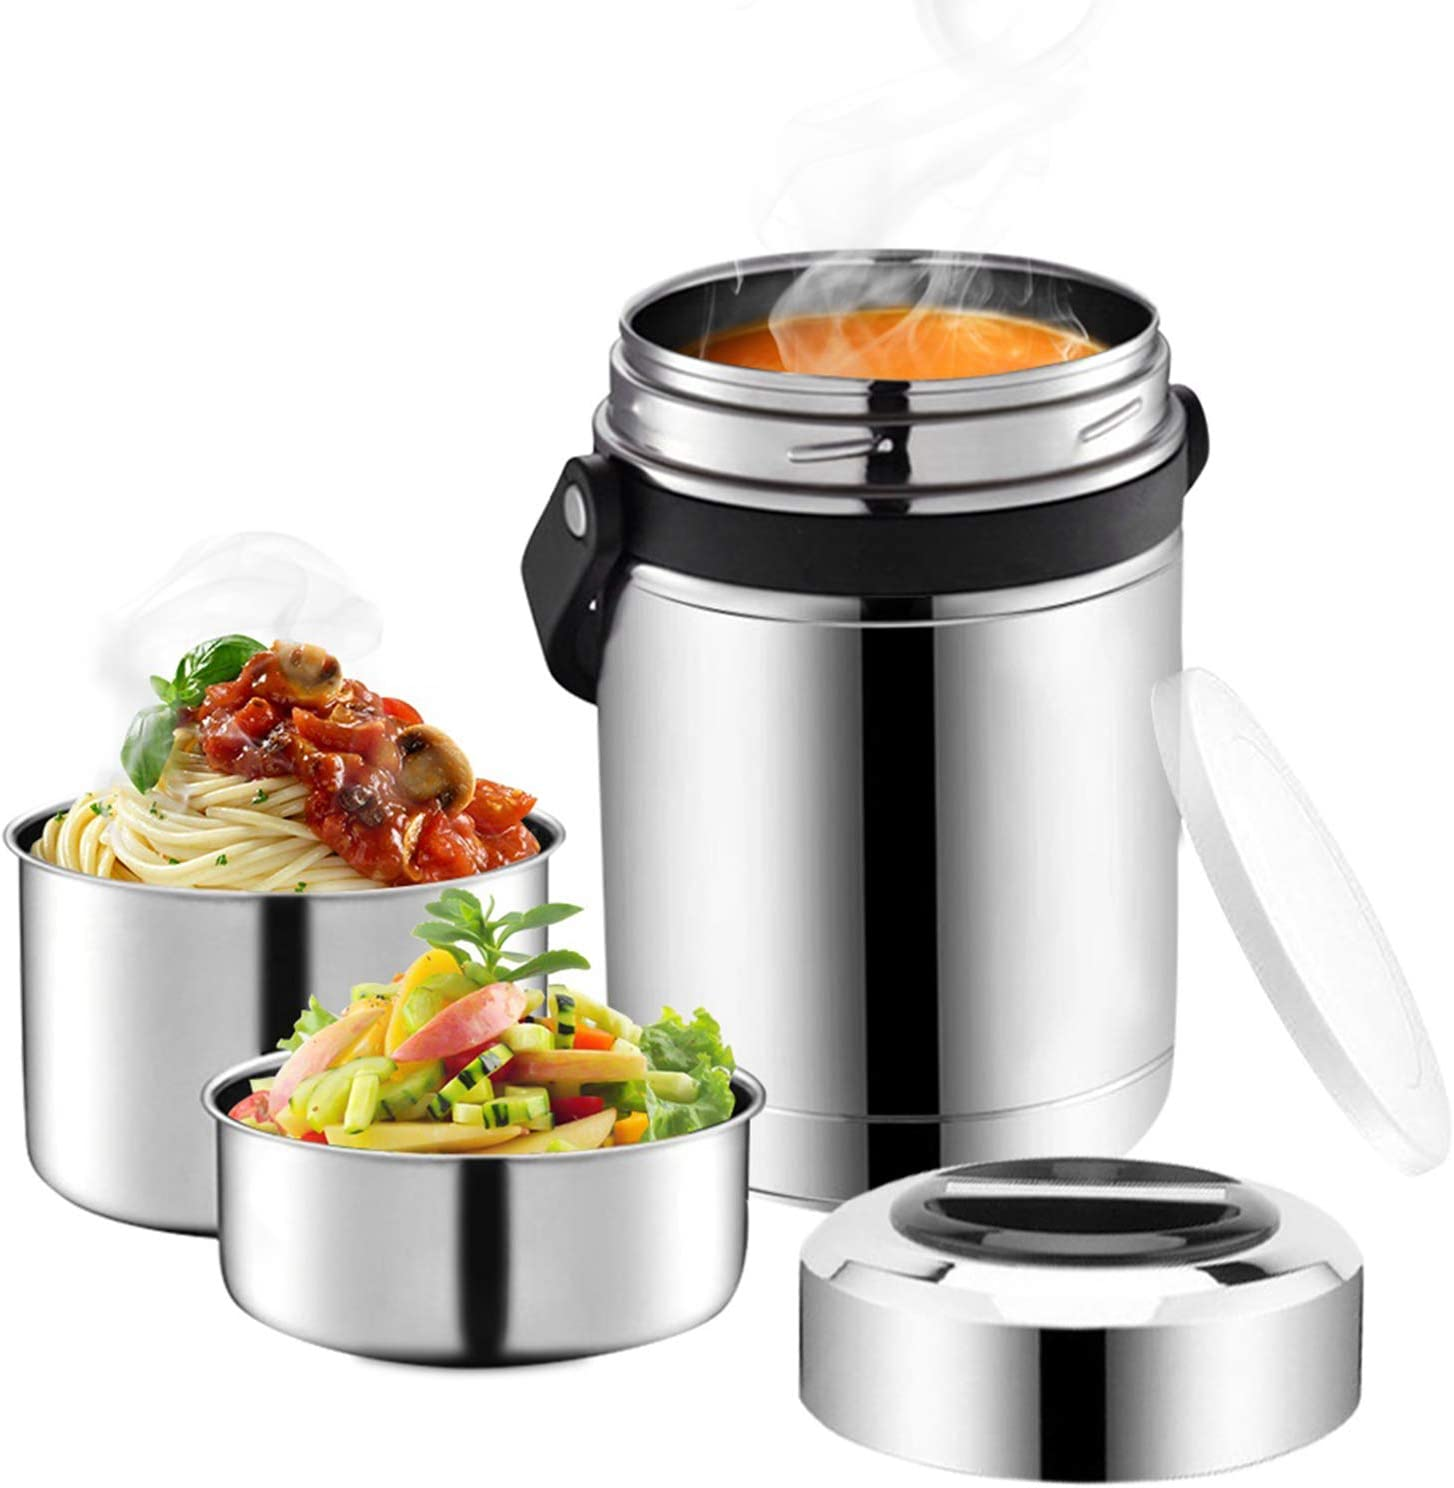 Soup Thermos Wide Mouth,61oz 3 Tier Large Food Thermos Jar,Multiple Tier Food Flask for Hot Food with Handle,Thermal Soup Container,Stainless Steel Food Jar,Travel Insulated Lunch Box,Lunch Container